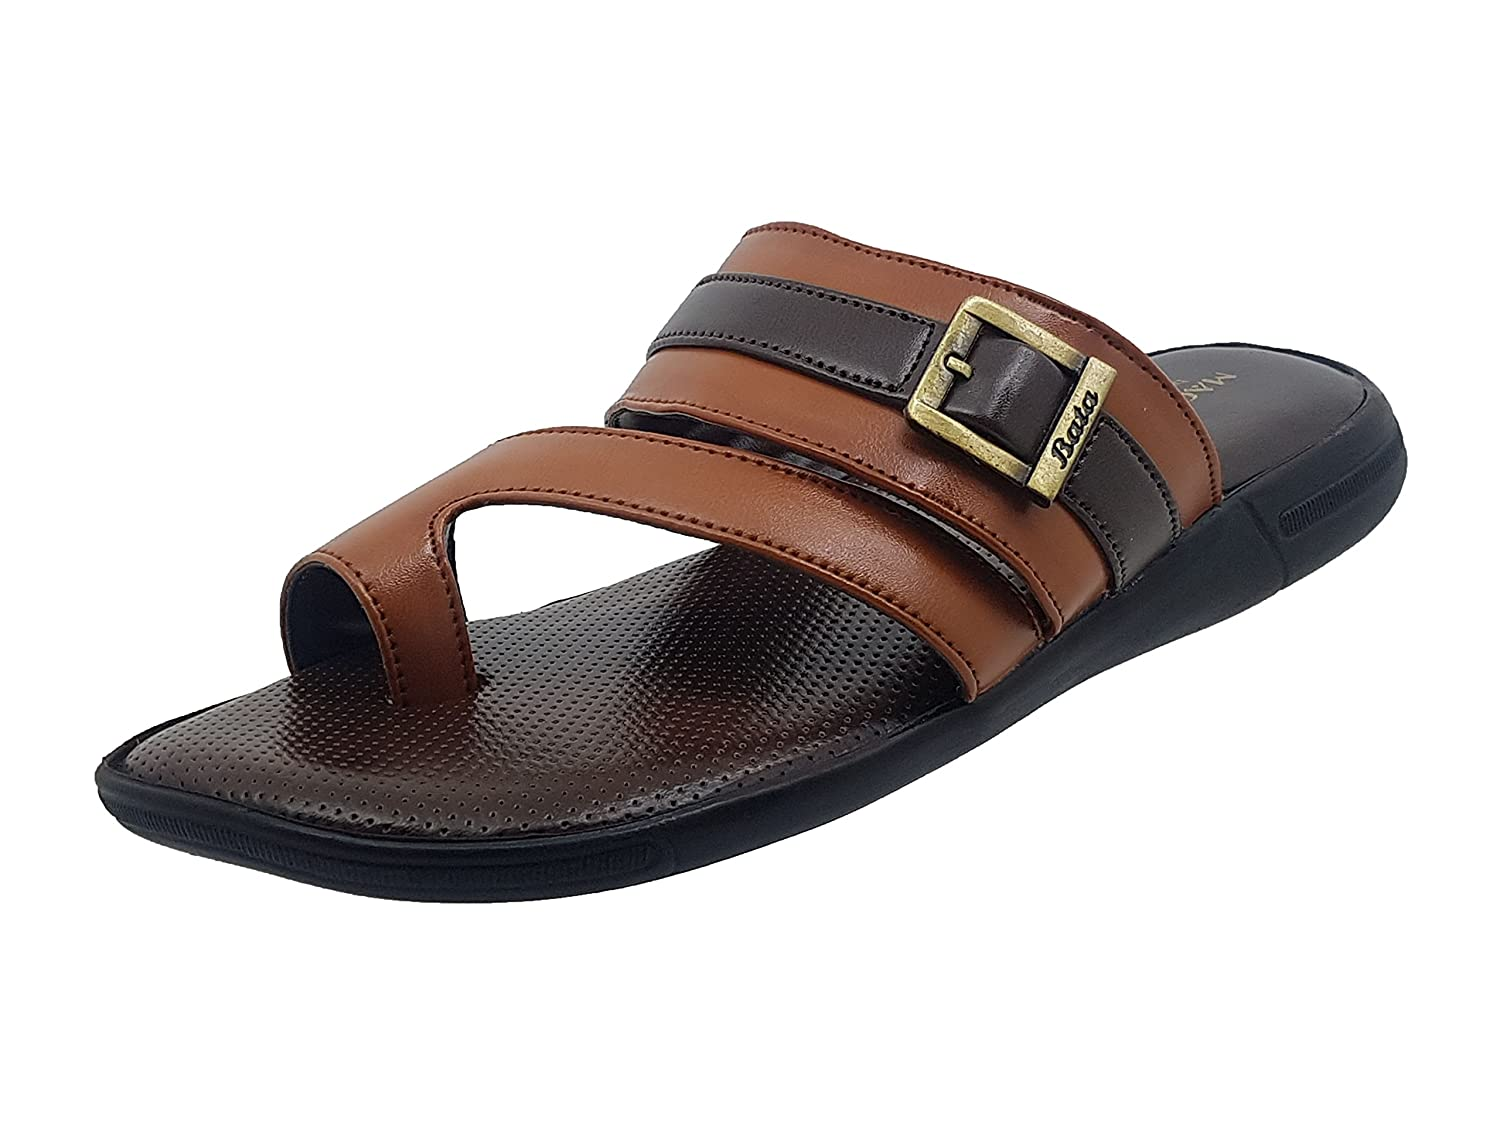 664b02774 BATA Men s Chappal  Buy Online at Low Prices in India - Amazon.in